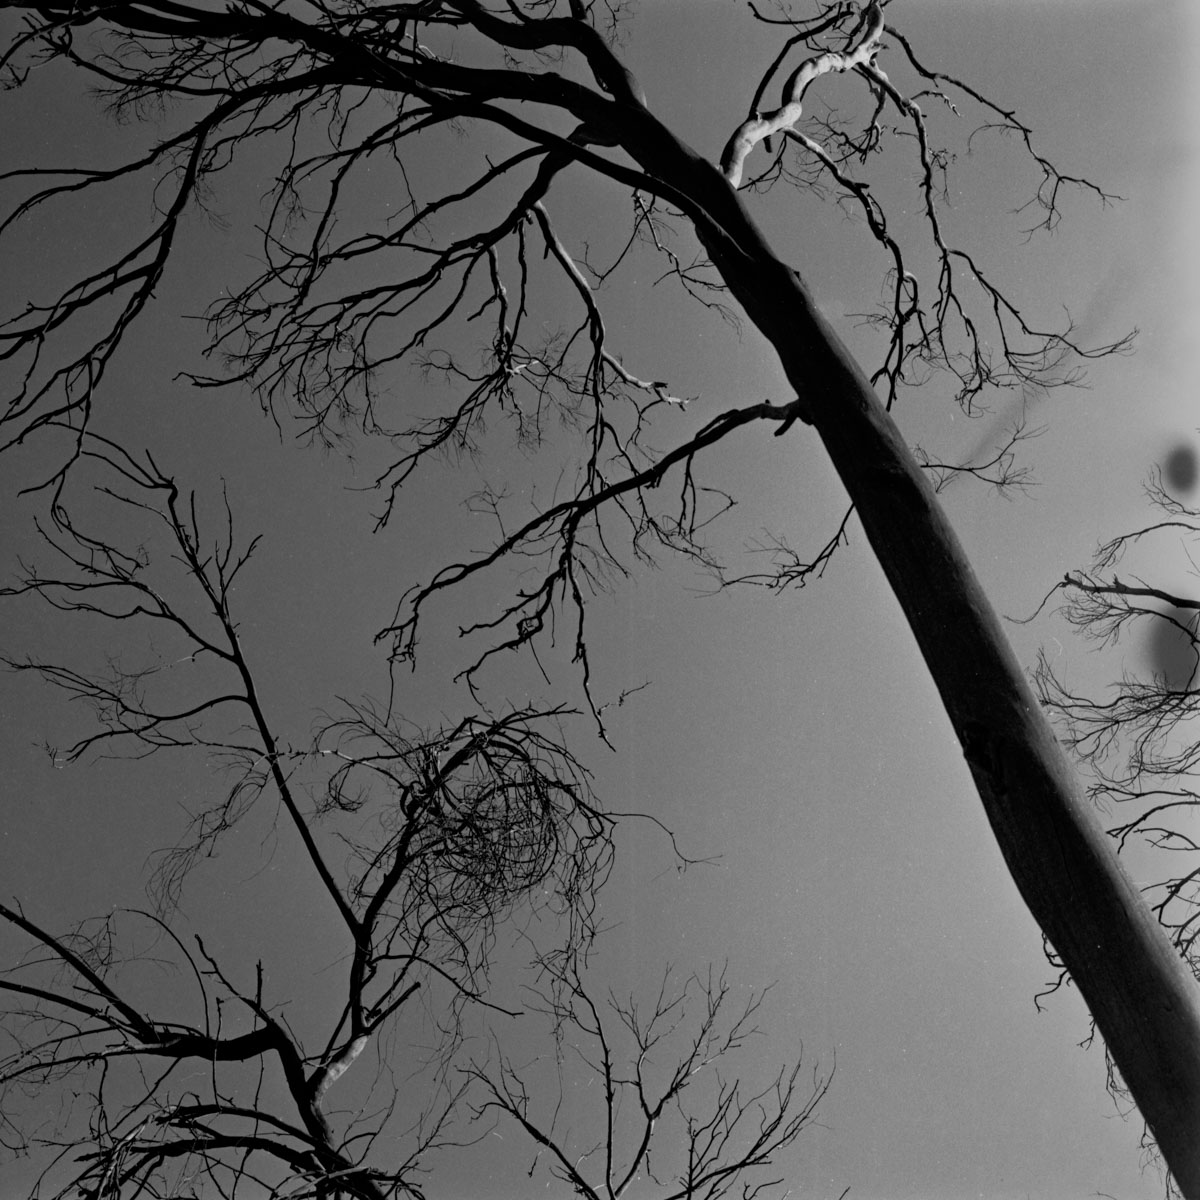 Medium Format photography - tired of people - go to trees